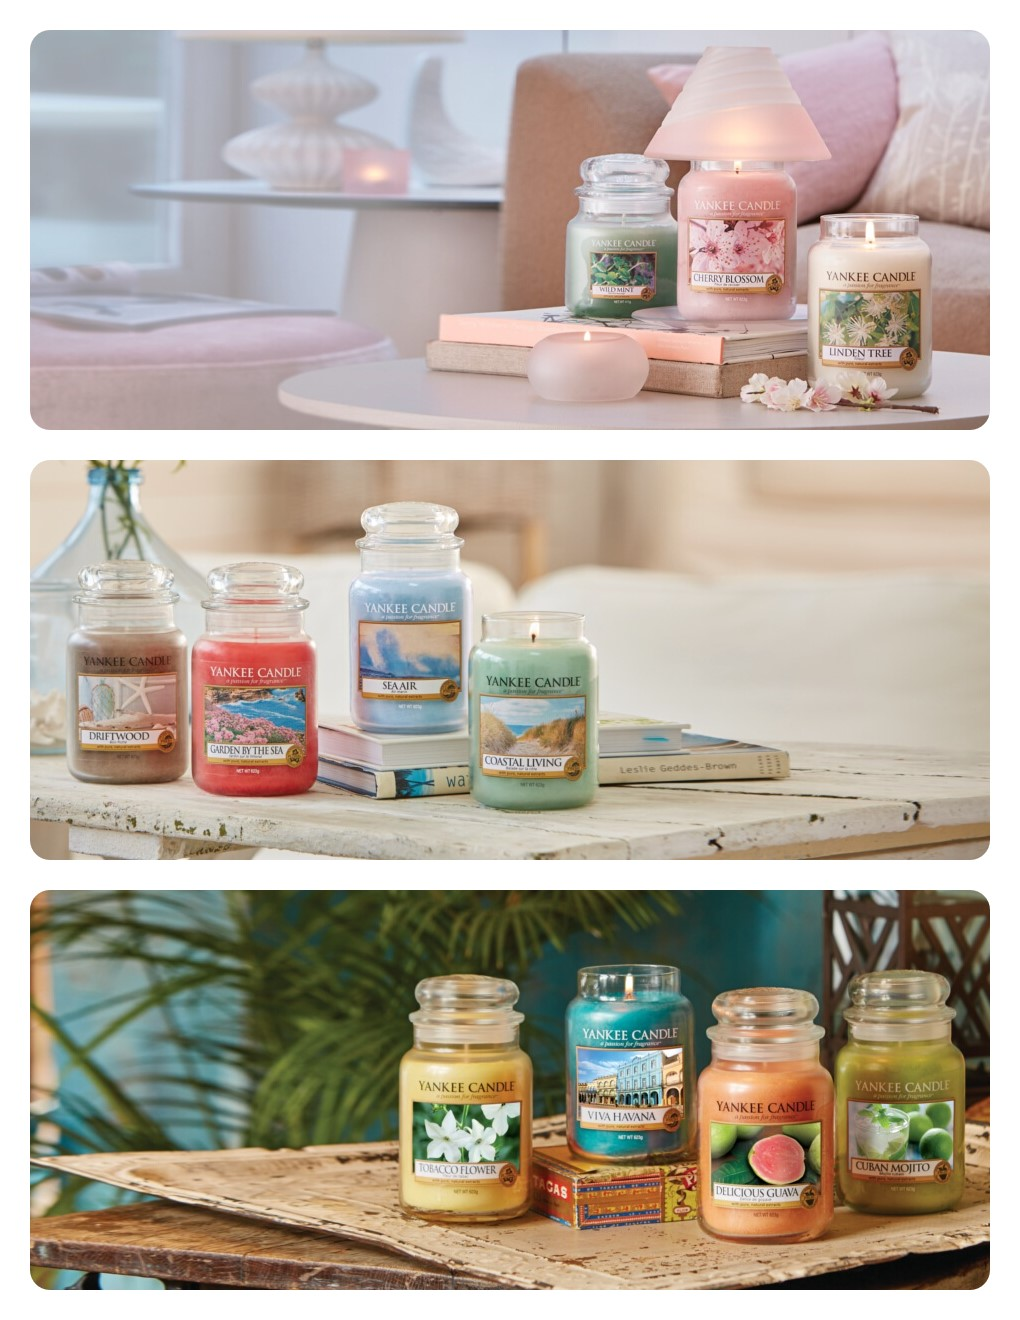 Yankee Candle 2017 New Releases